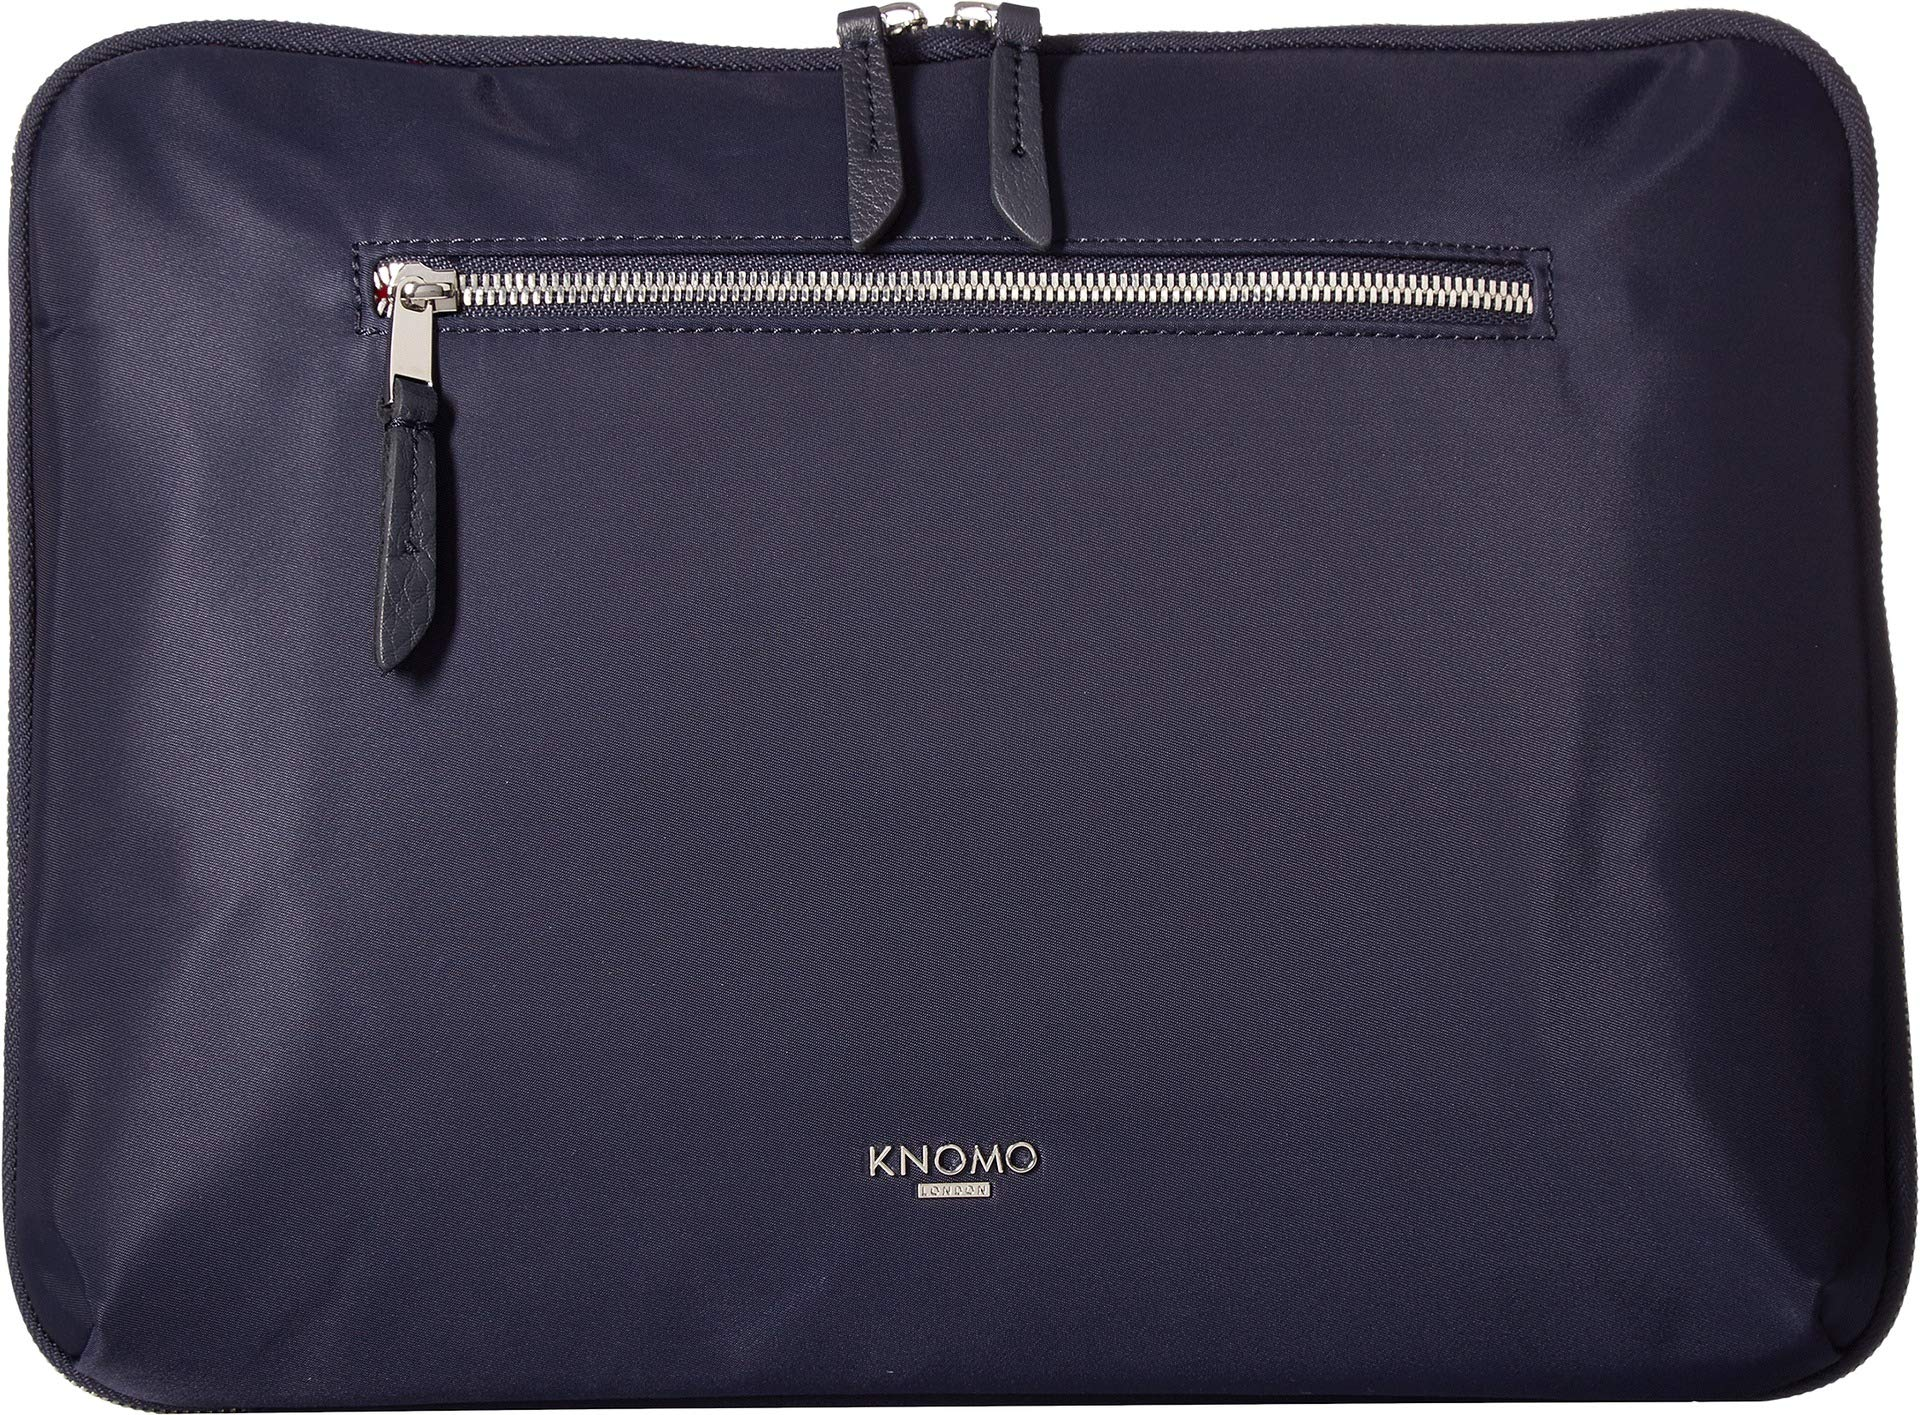 KNOMO London Women's Mayfair Knomad 13'' Tech Organiser Dark Navy One Size by Knomo